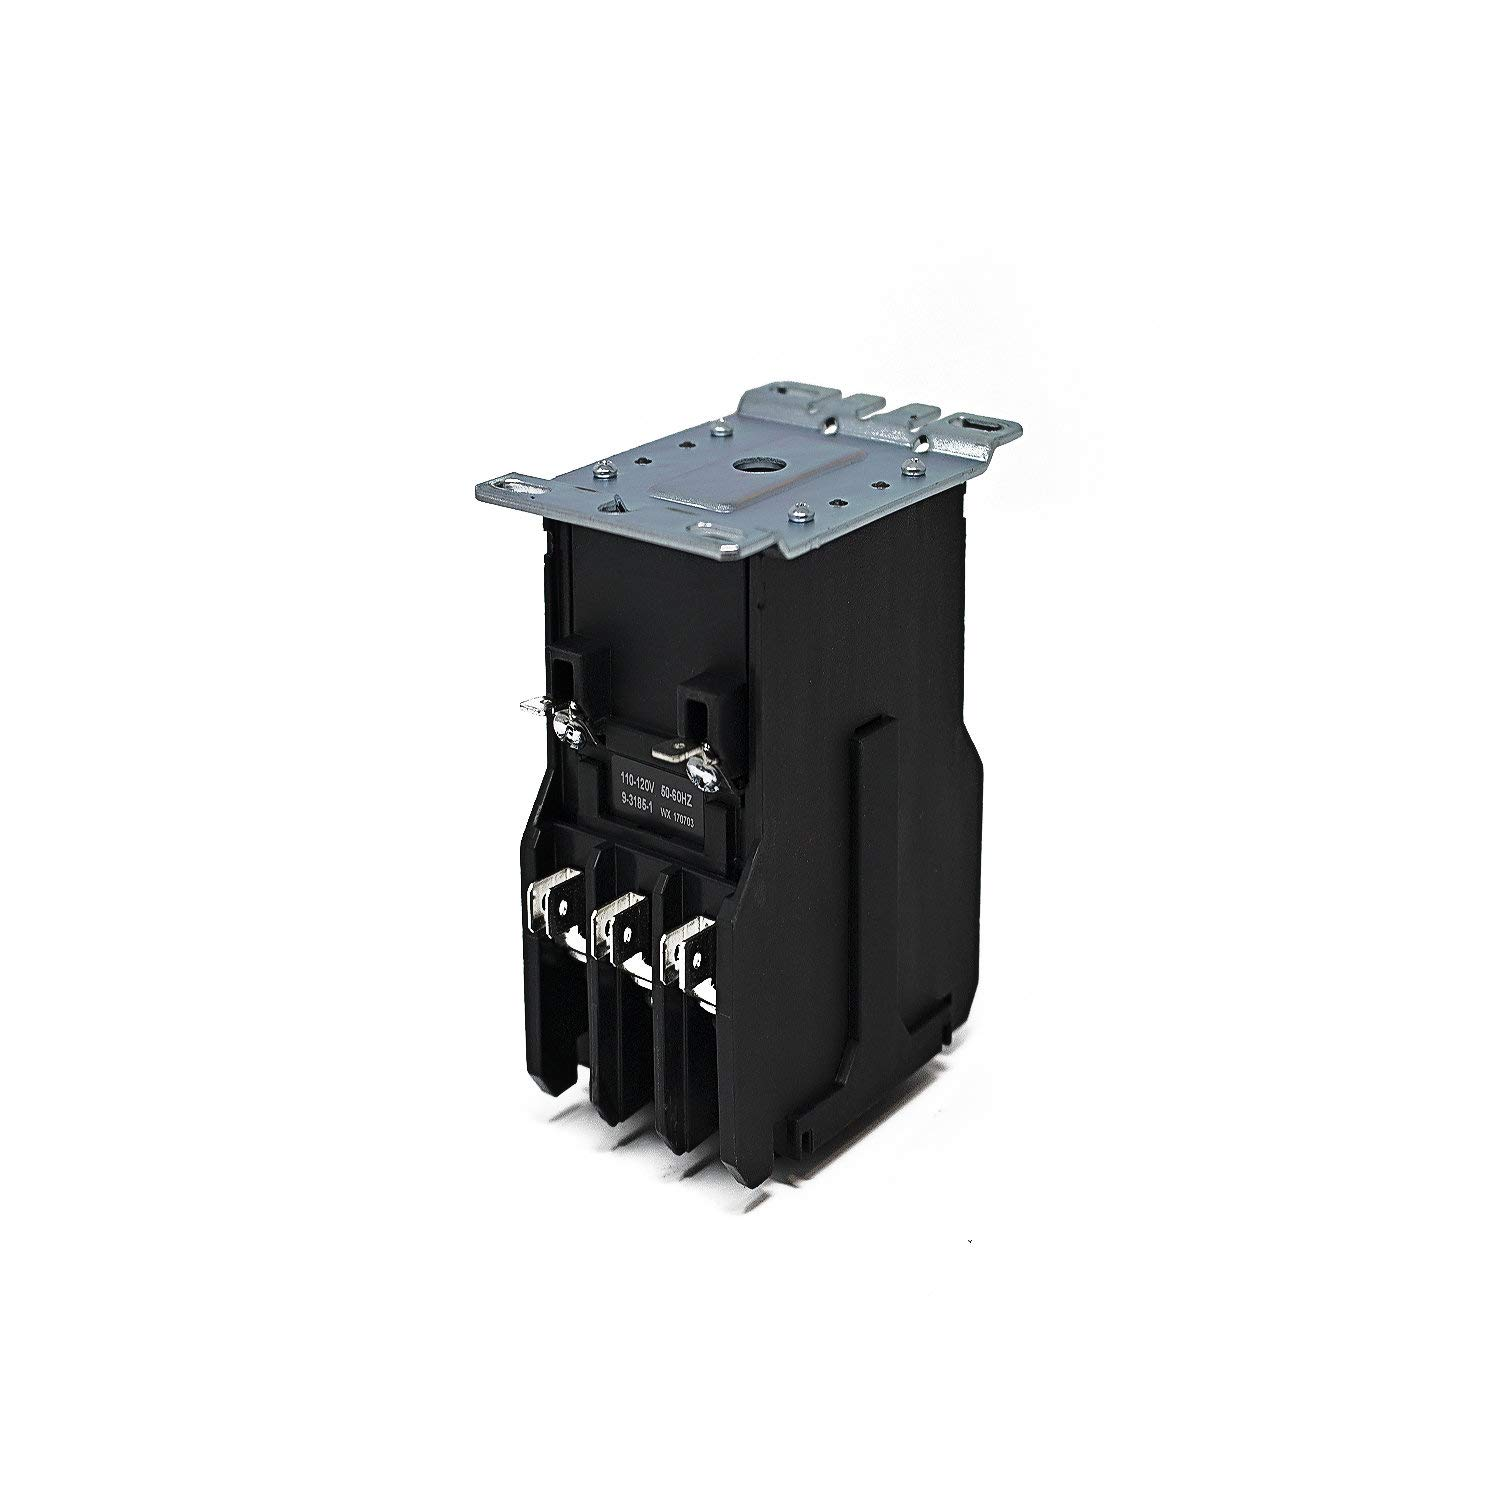 MM Supplies Definite Purpose Contactor 3 pole 120 volt 30 amp HVAC AC Heating Air Coil Replacement for Eaton C25DND330A